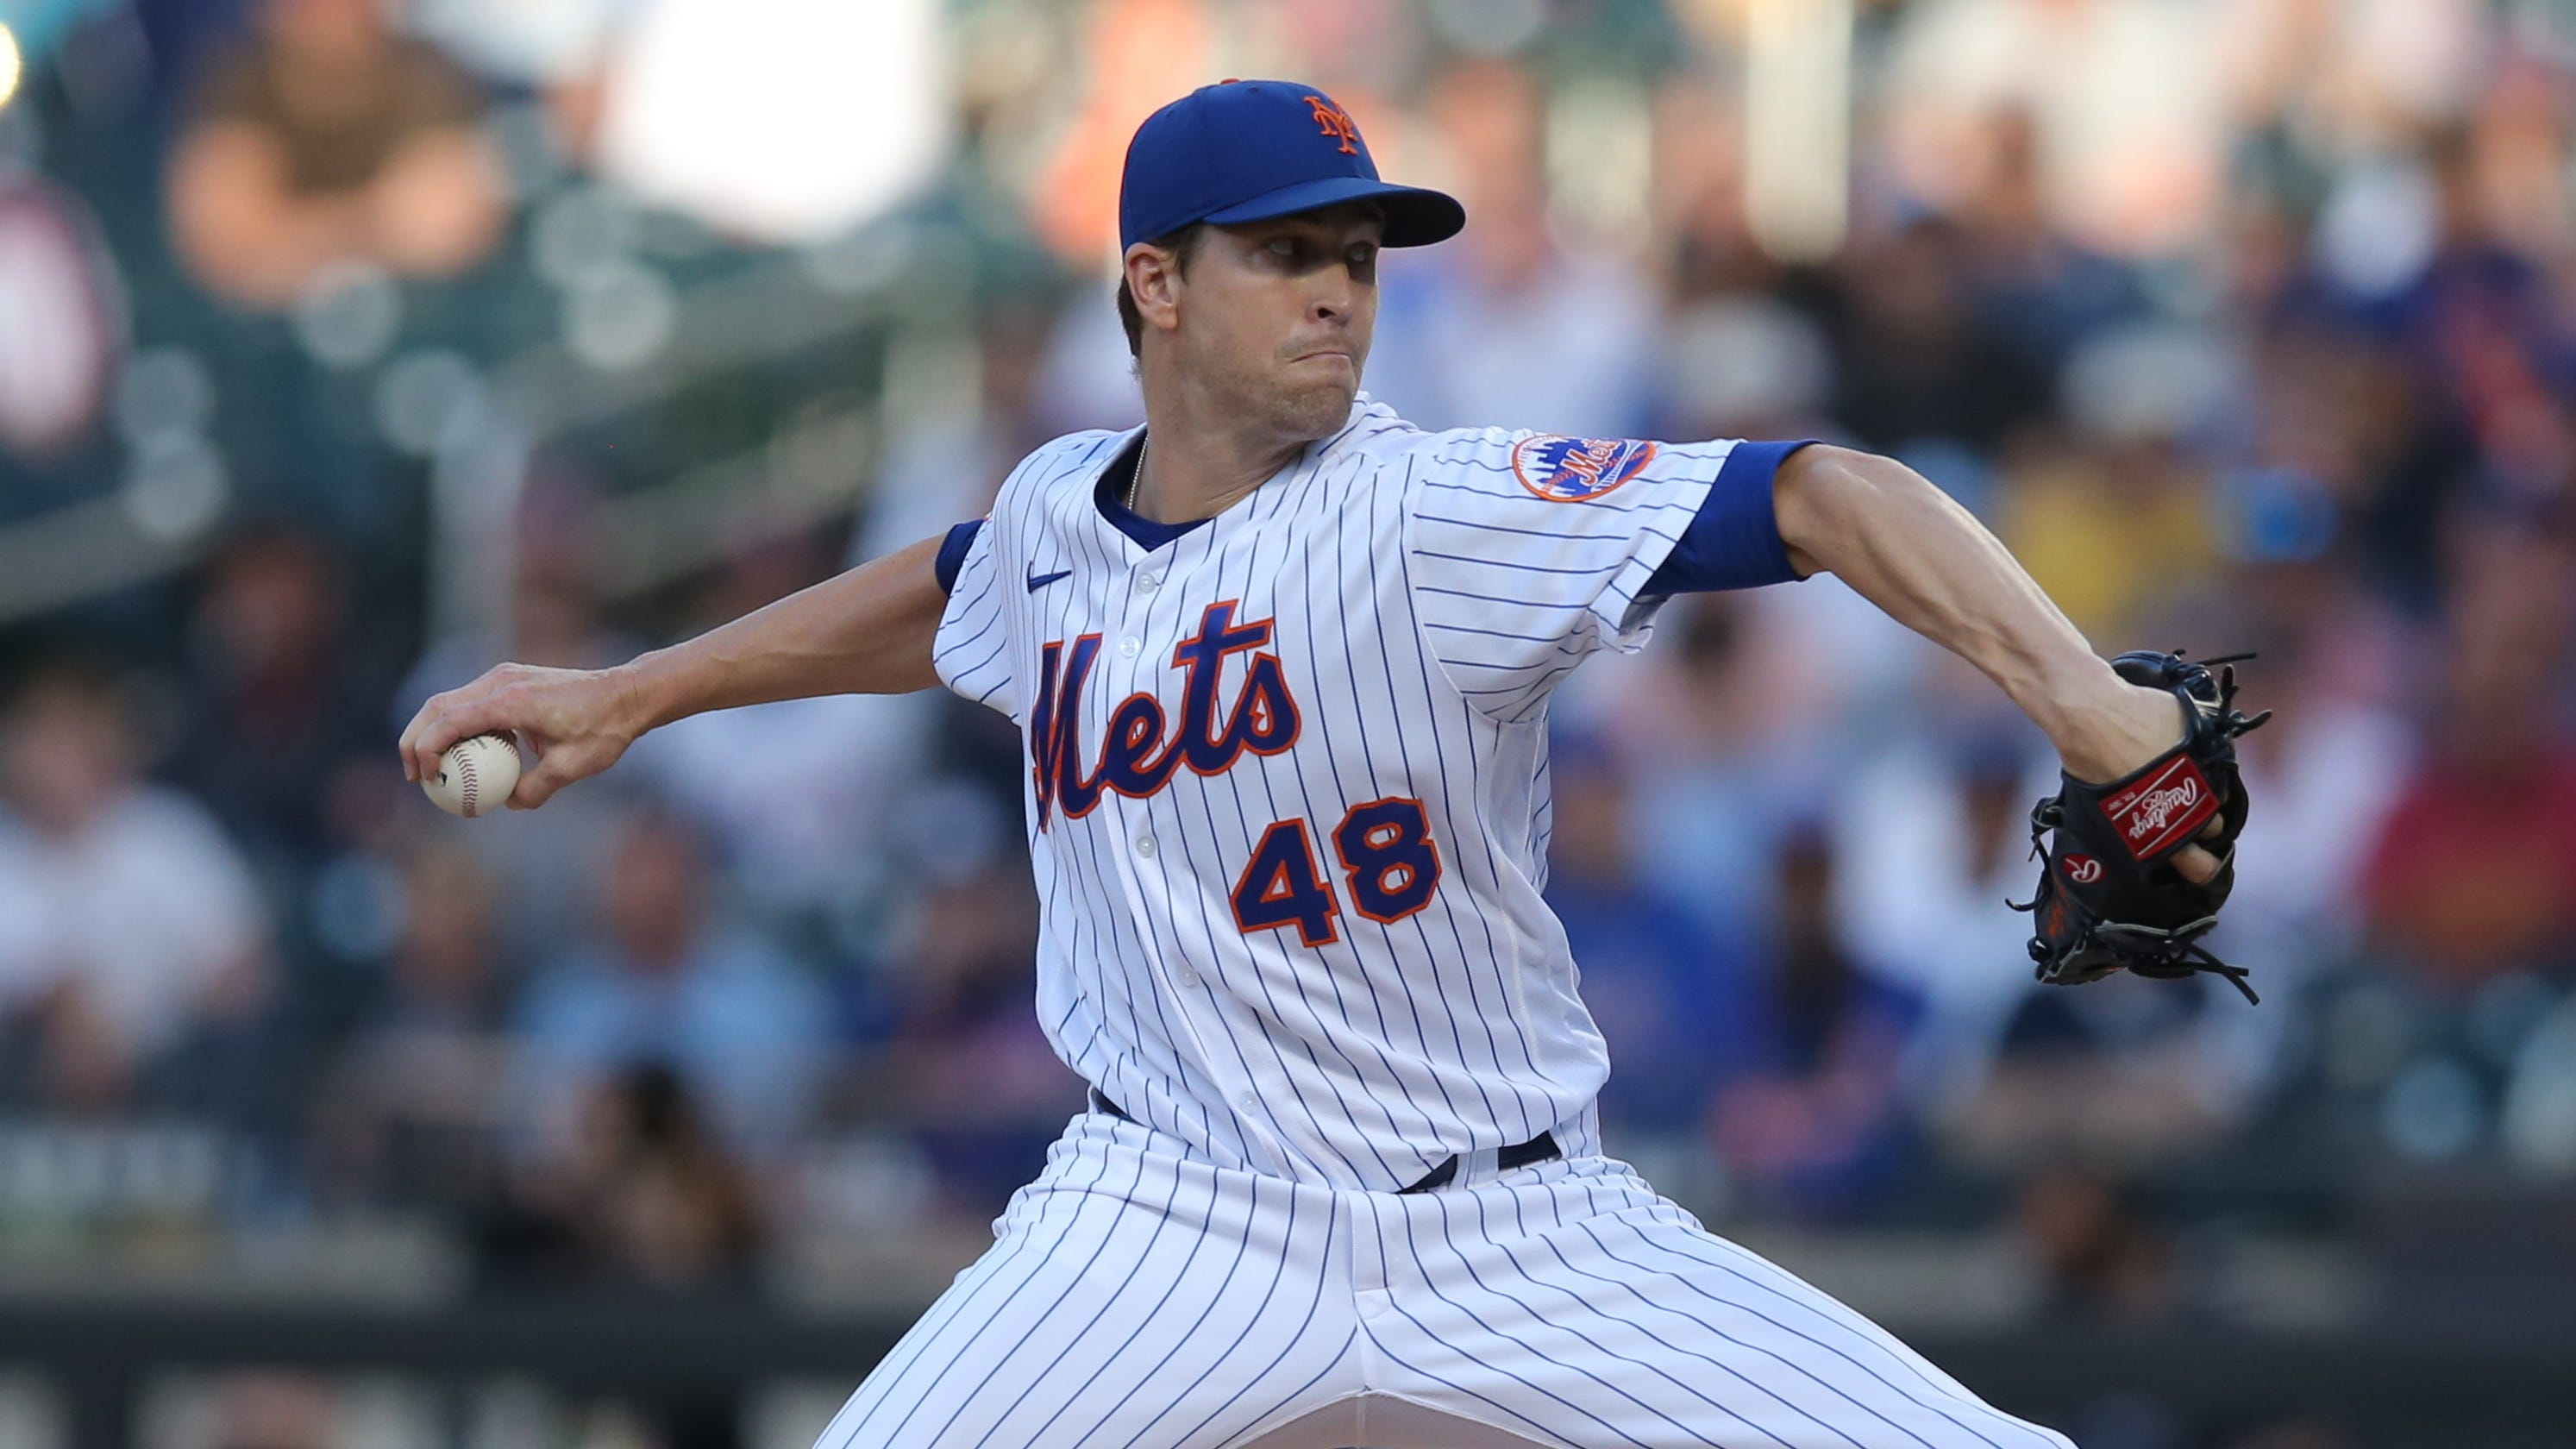 New York Mets ace Jacob deGrom exits start after 3 innings due to right shoulder soreness